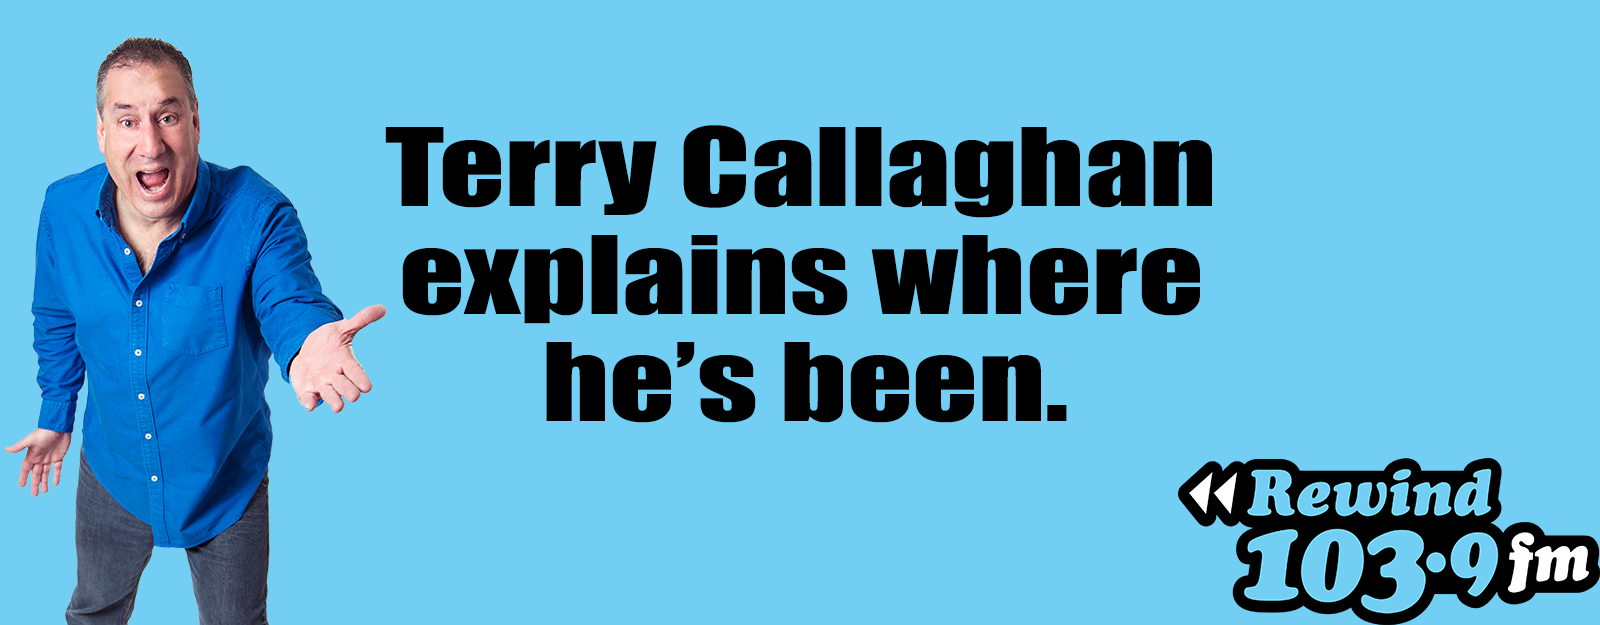 Terry Callaghan Explains Where He's Been